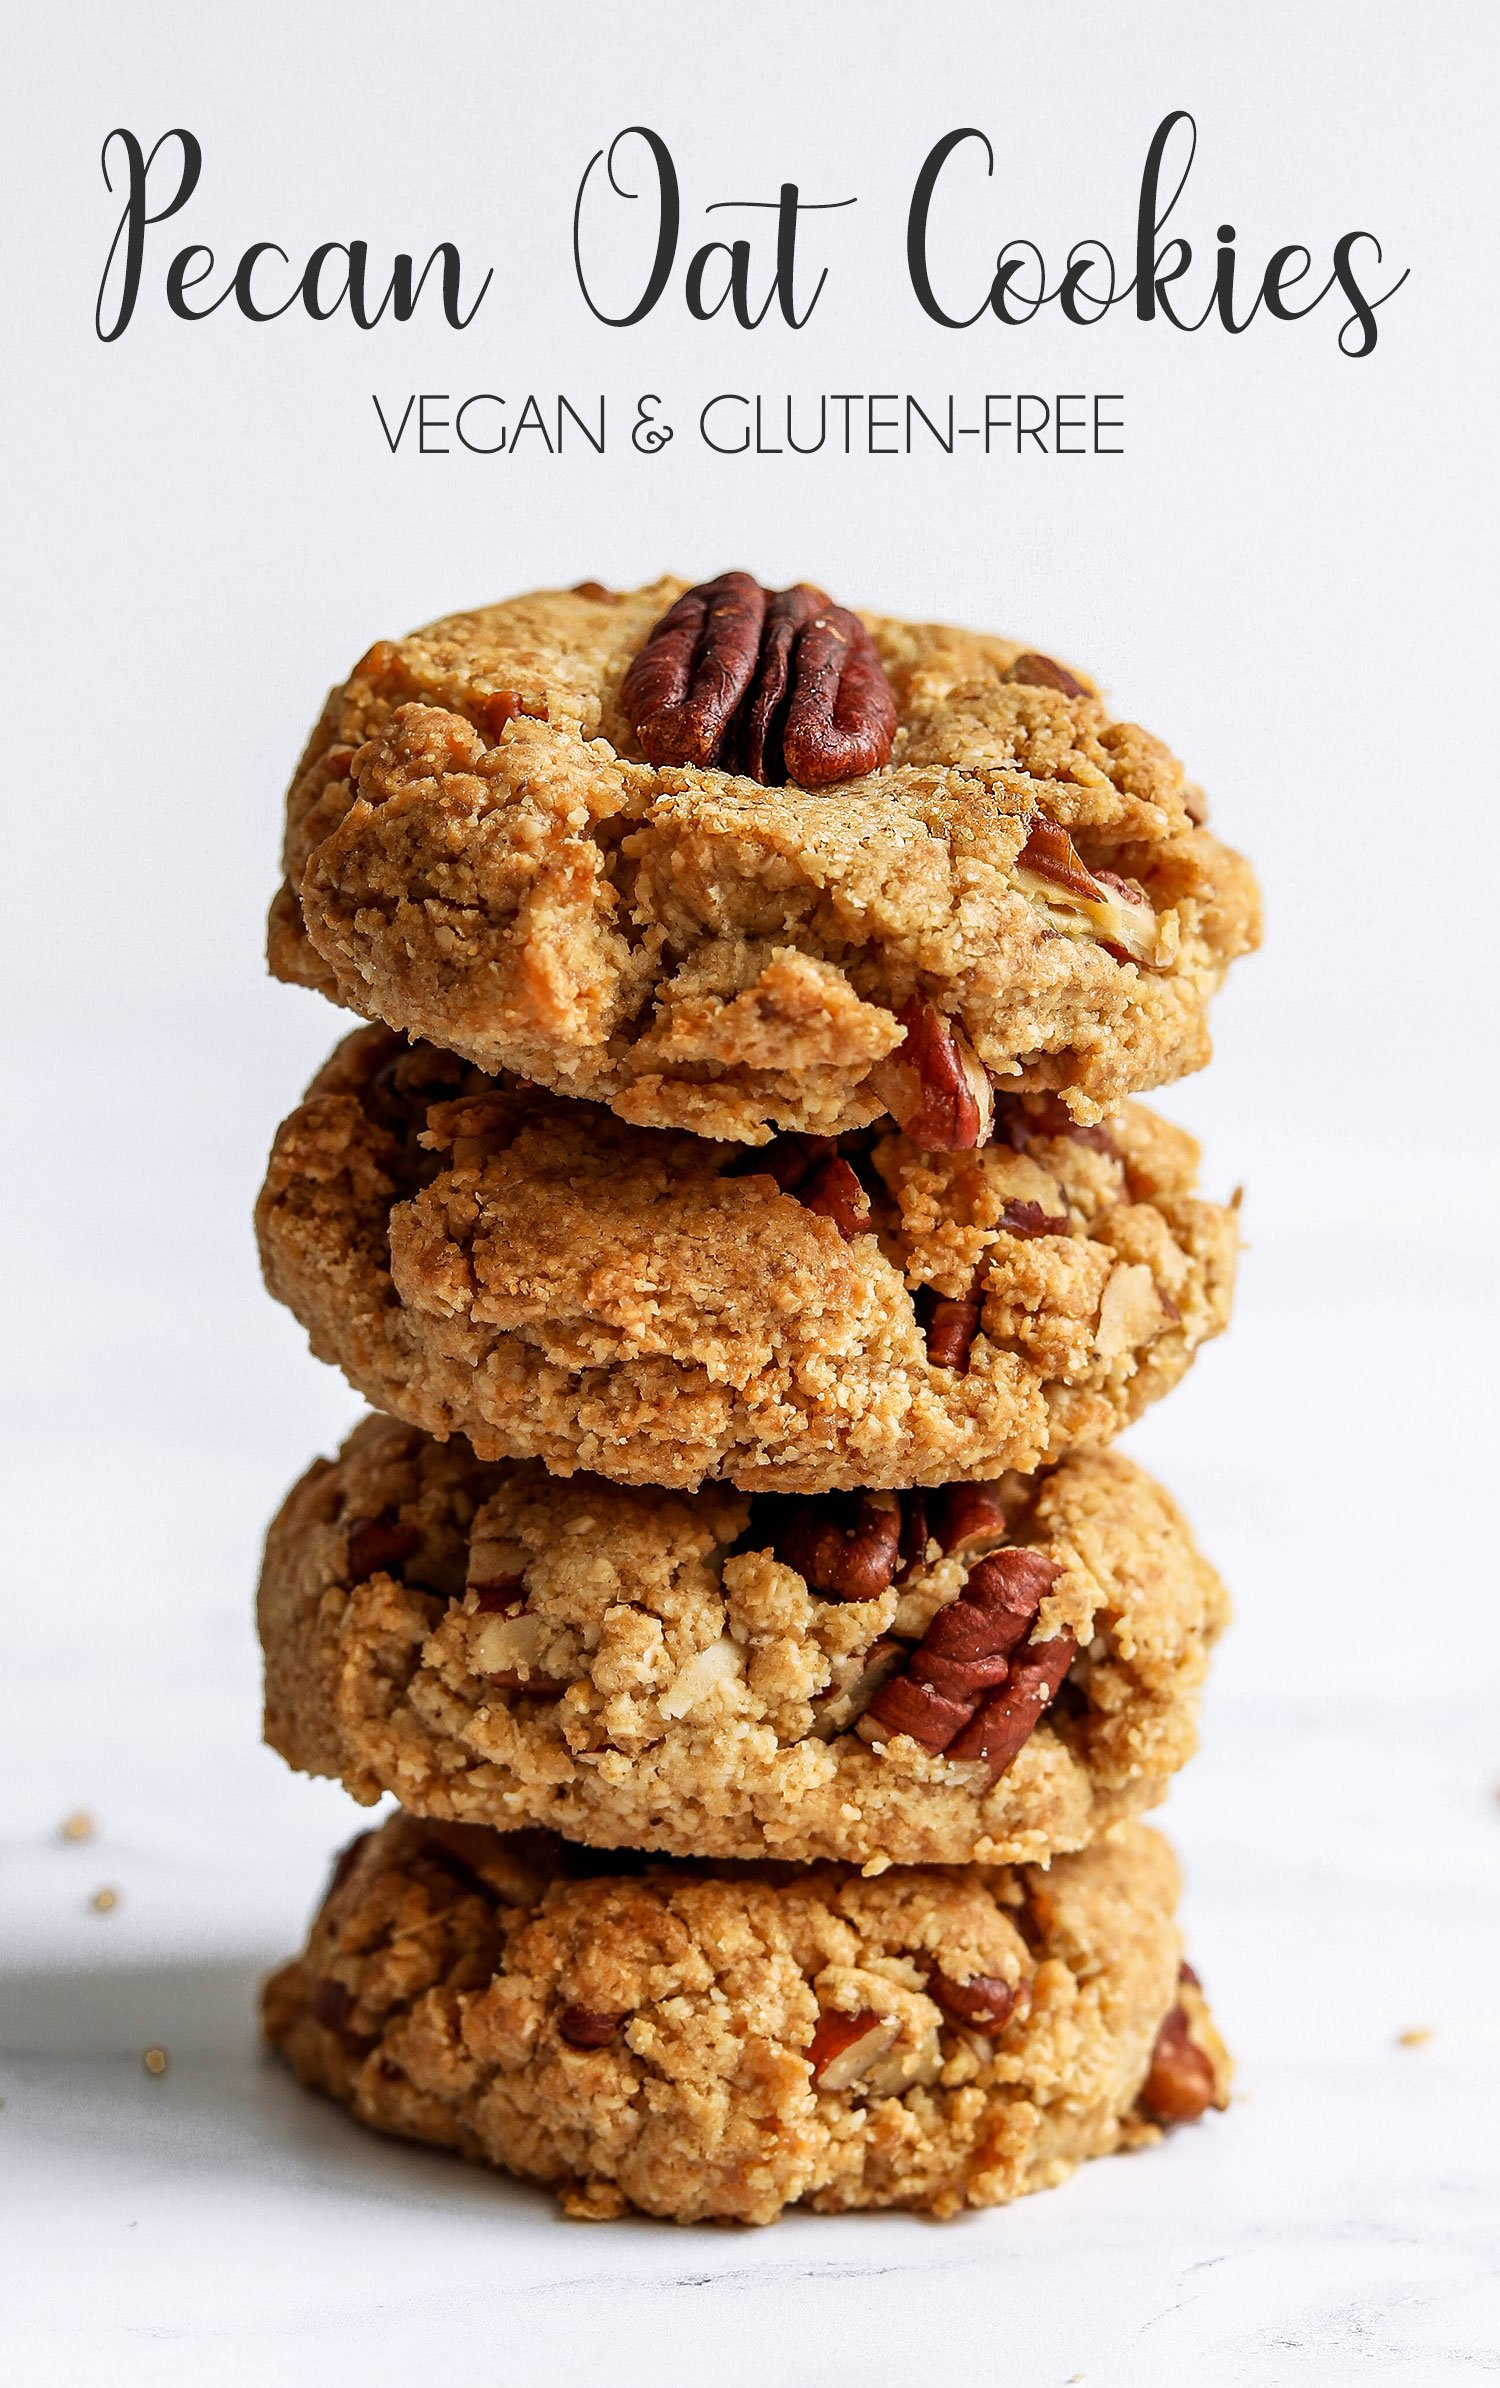 Vegan and Gluten-free Pecan Oat Cookies